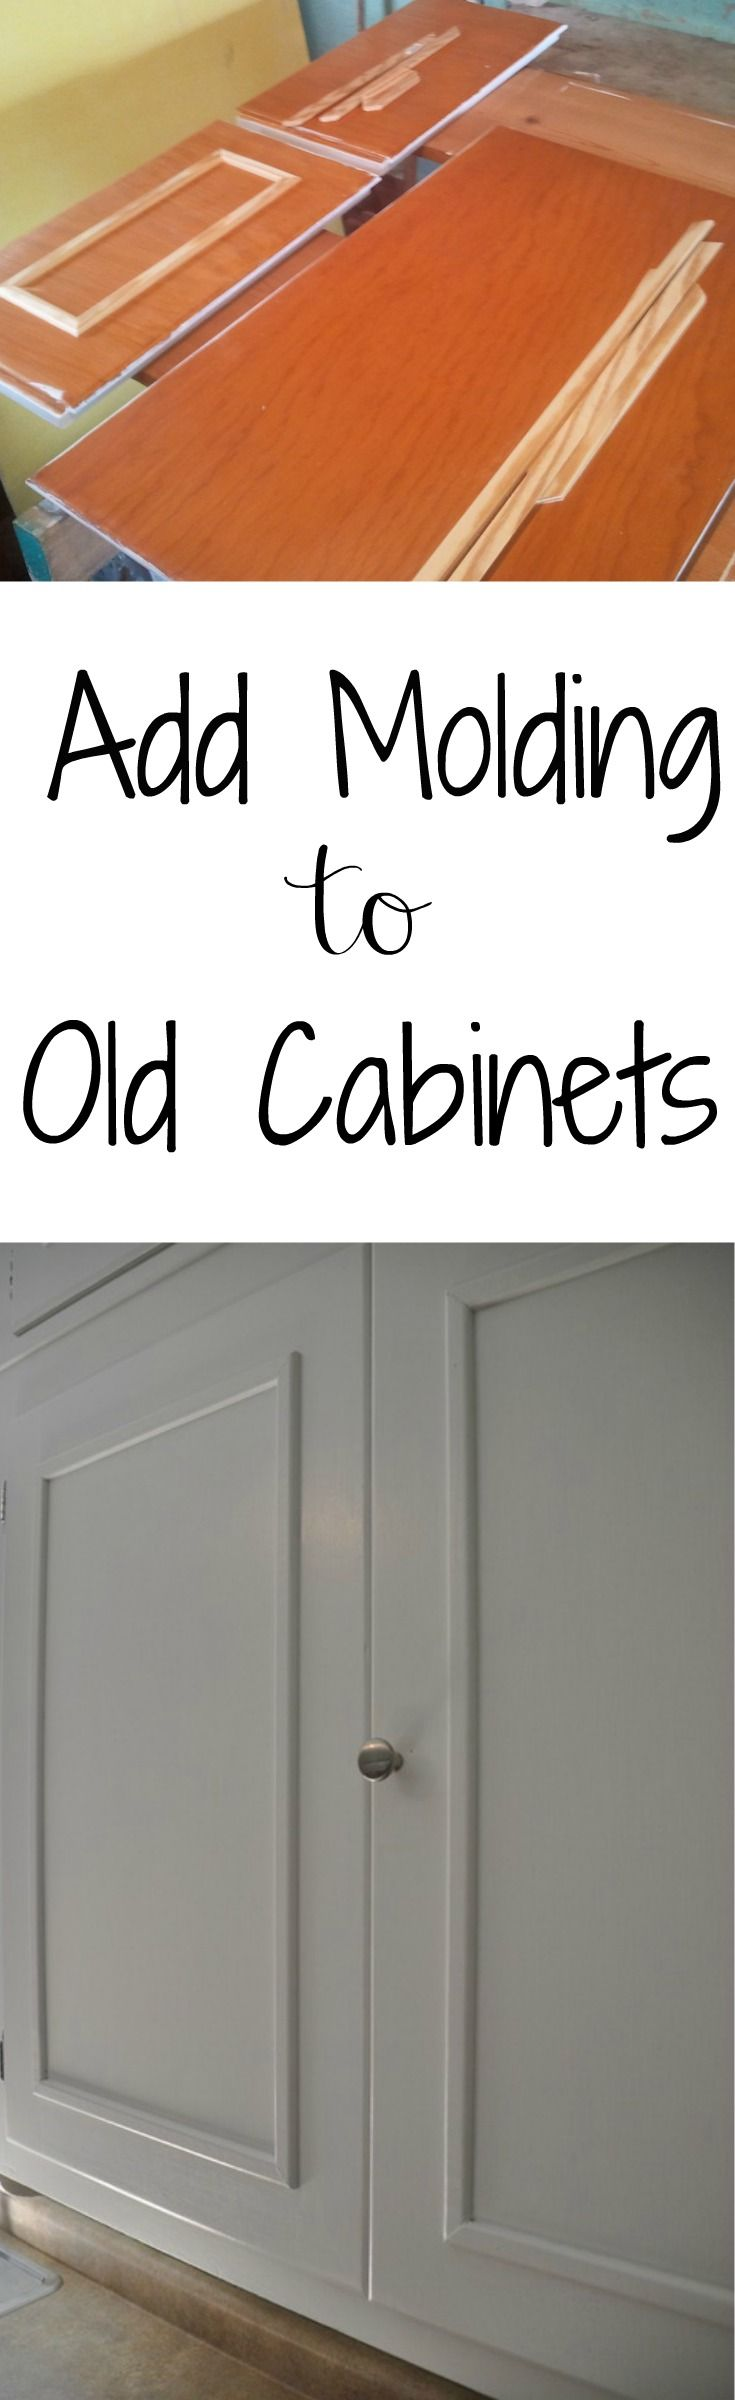 updating kitchen cabinets redo kitchen cabinets Add Molding to Old Cabinets Great way to update those old and boring cabinets